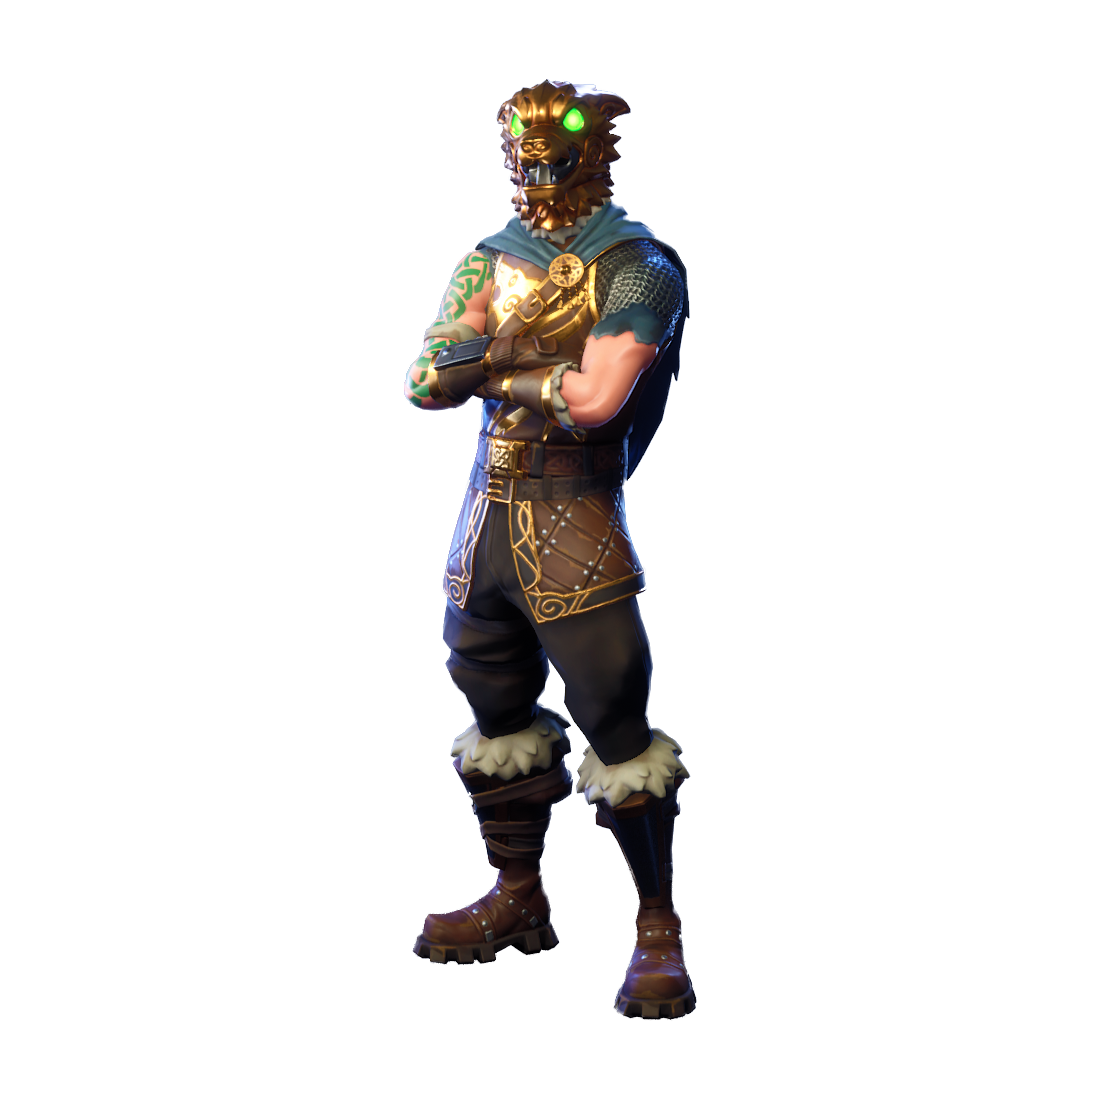 Fortnite characters png. Fnbr co cosmetics report